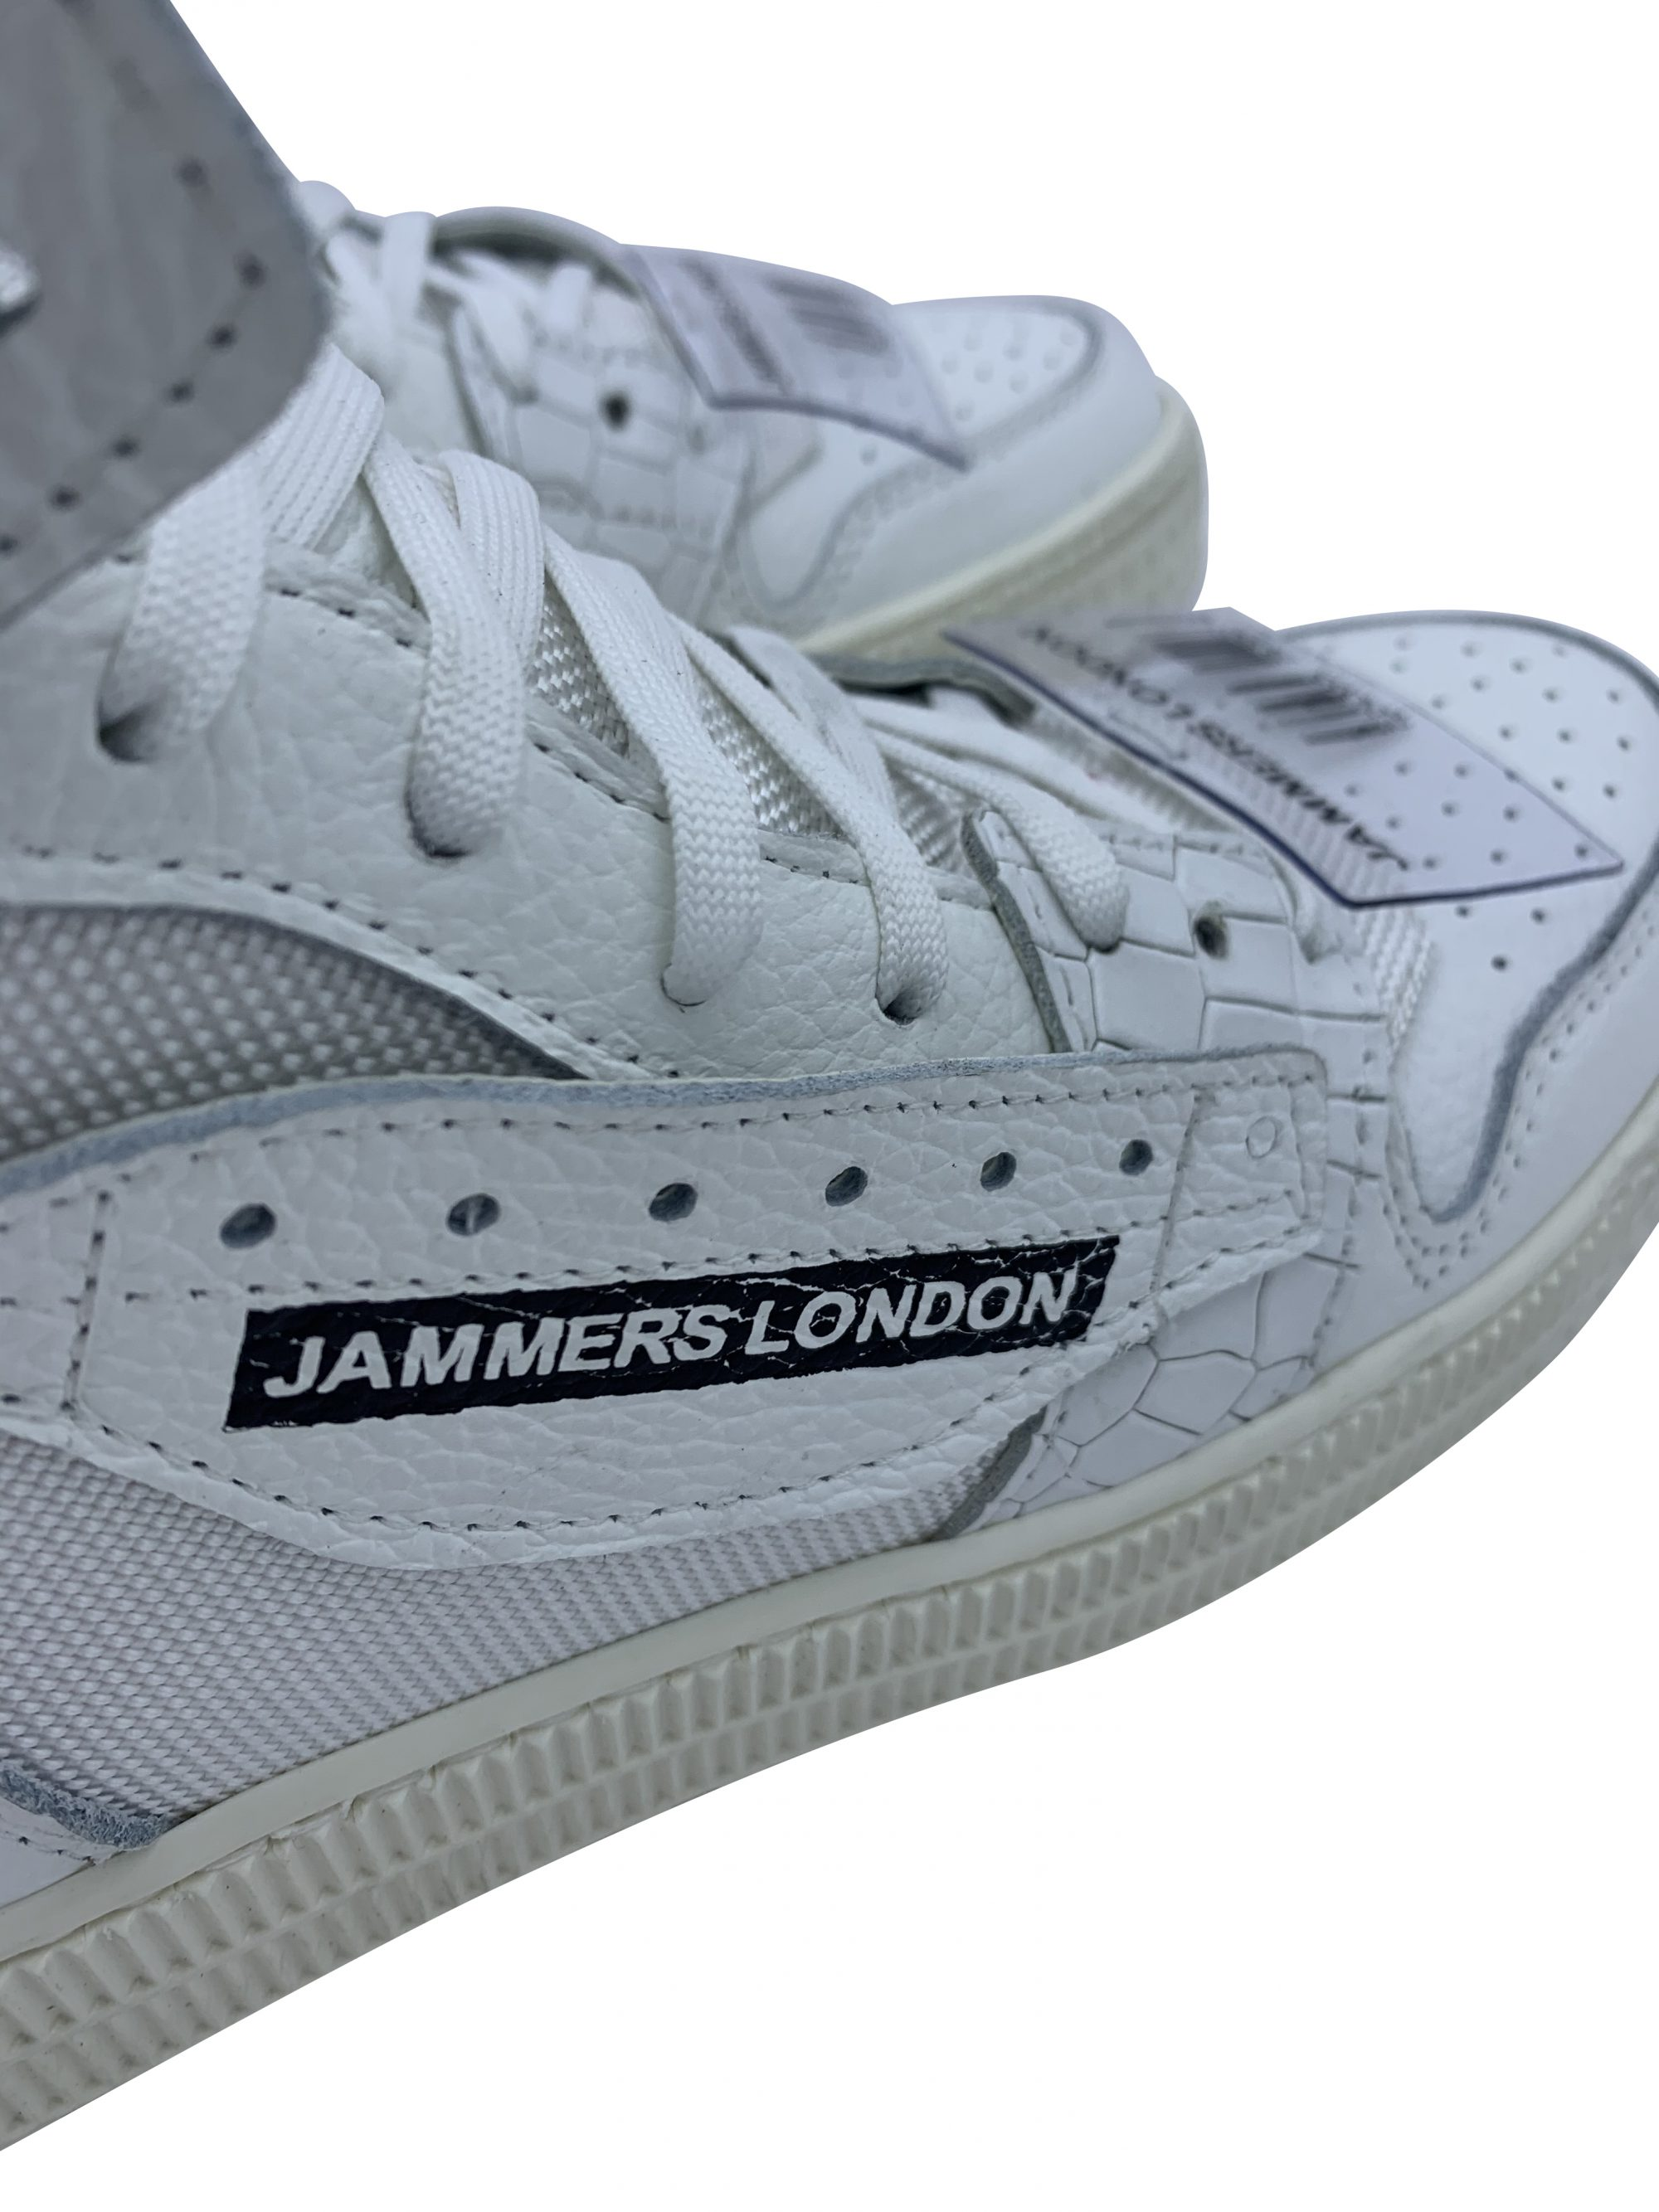 JAMMERS LONDON OFF-CODE VERSIONE60